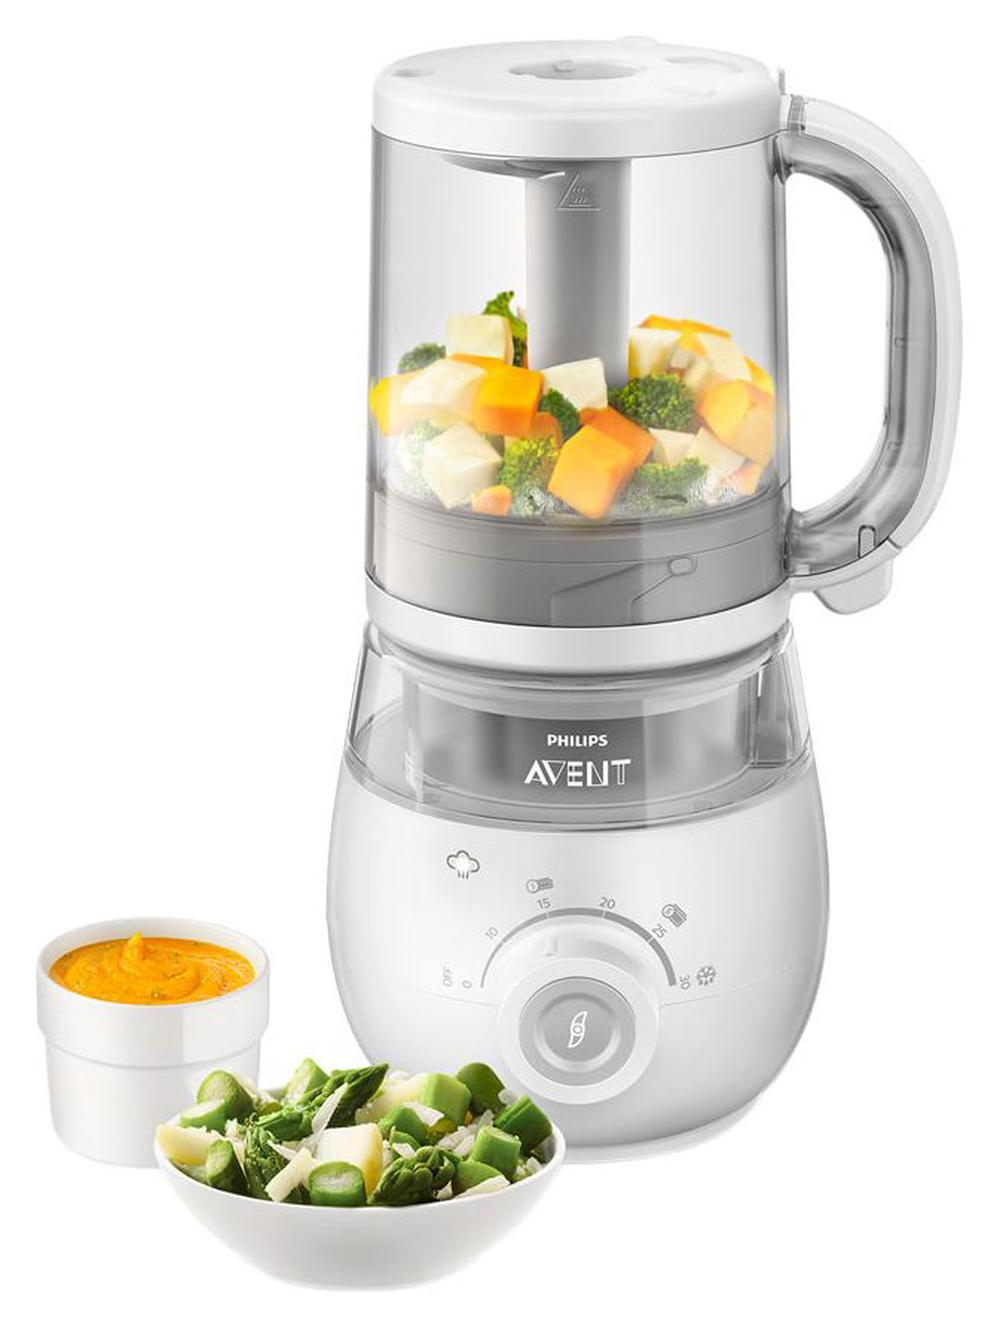 Philips Avent 4-in-1 Healthy Baby Food Maker Steamer Blender